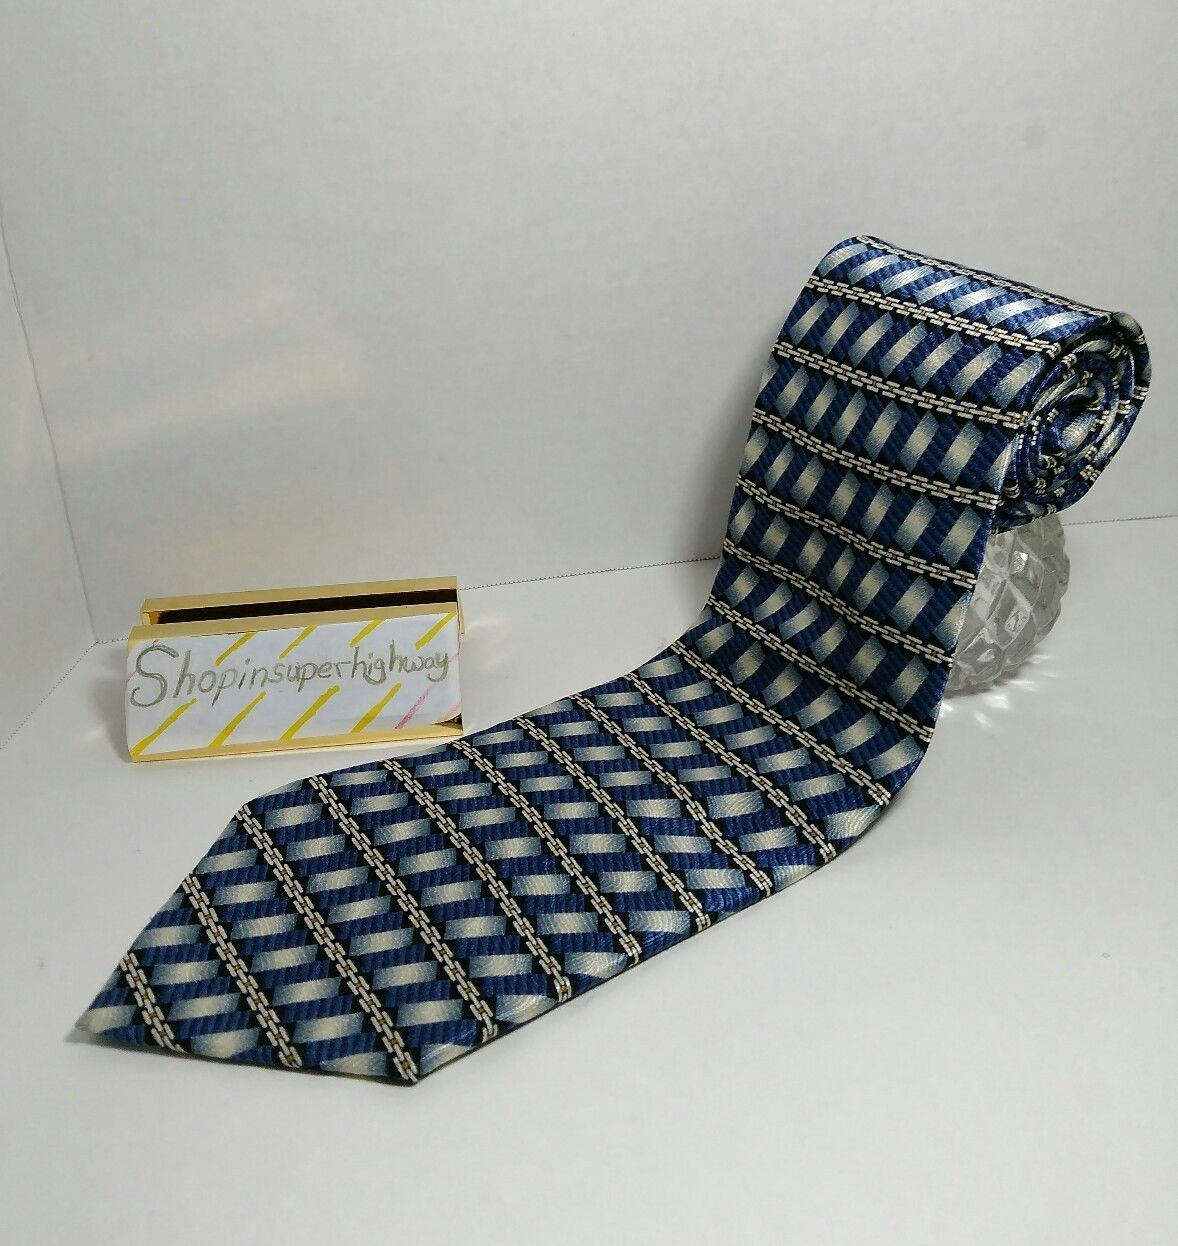 Monterey Bay By J. Blades and Company mens tie Blue with chain design USA EUC